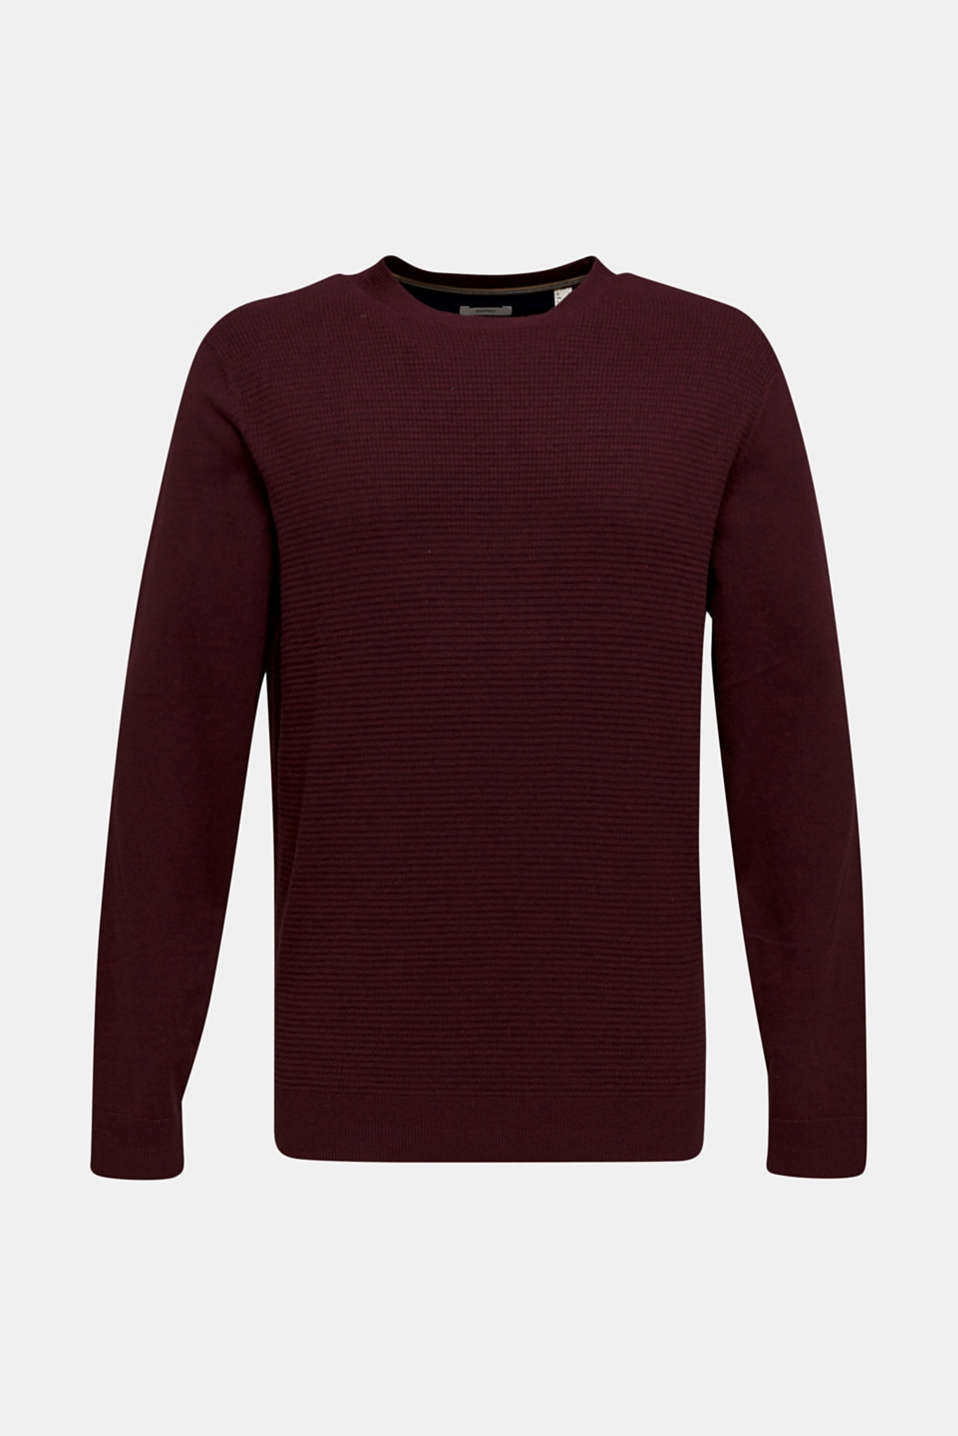 Cashmere blend: textured knit jumper, BORDEAUX RED 5, detail image number 8